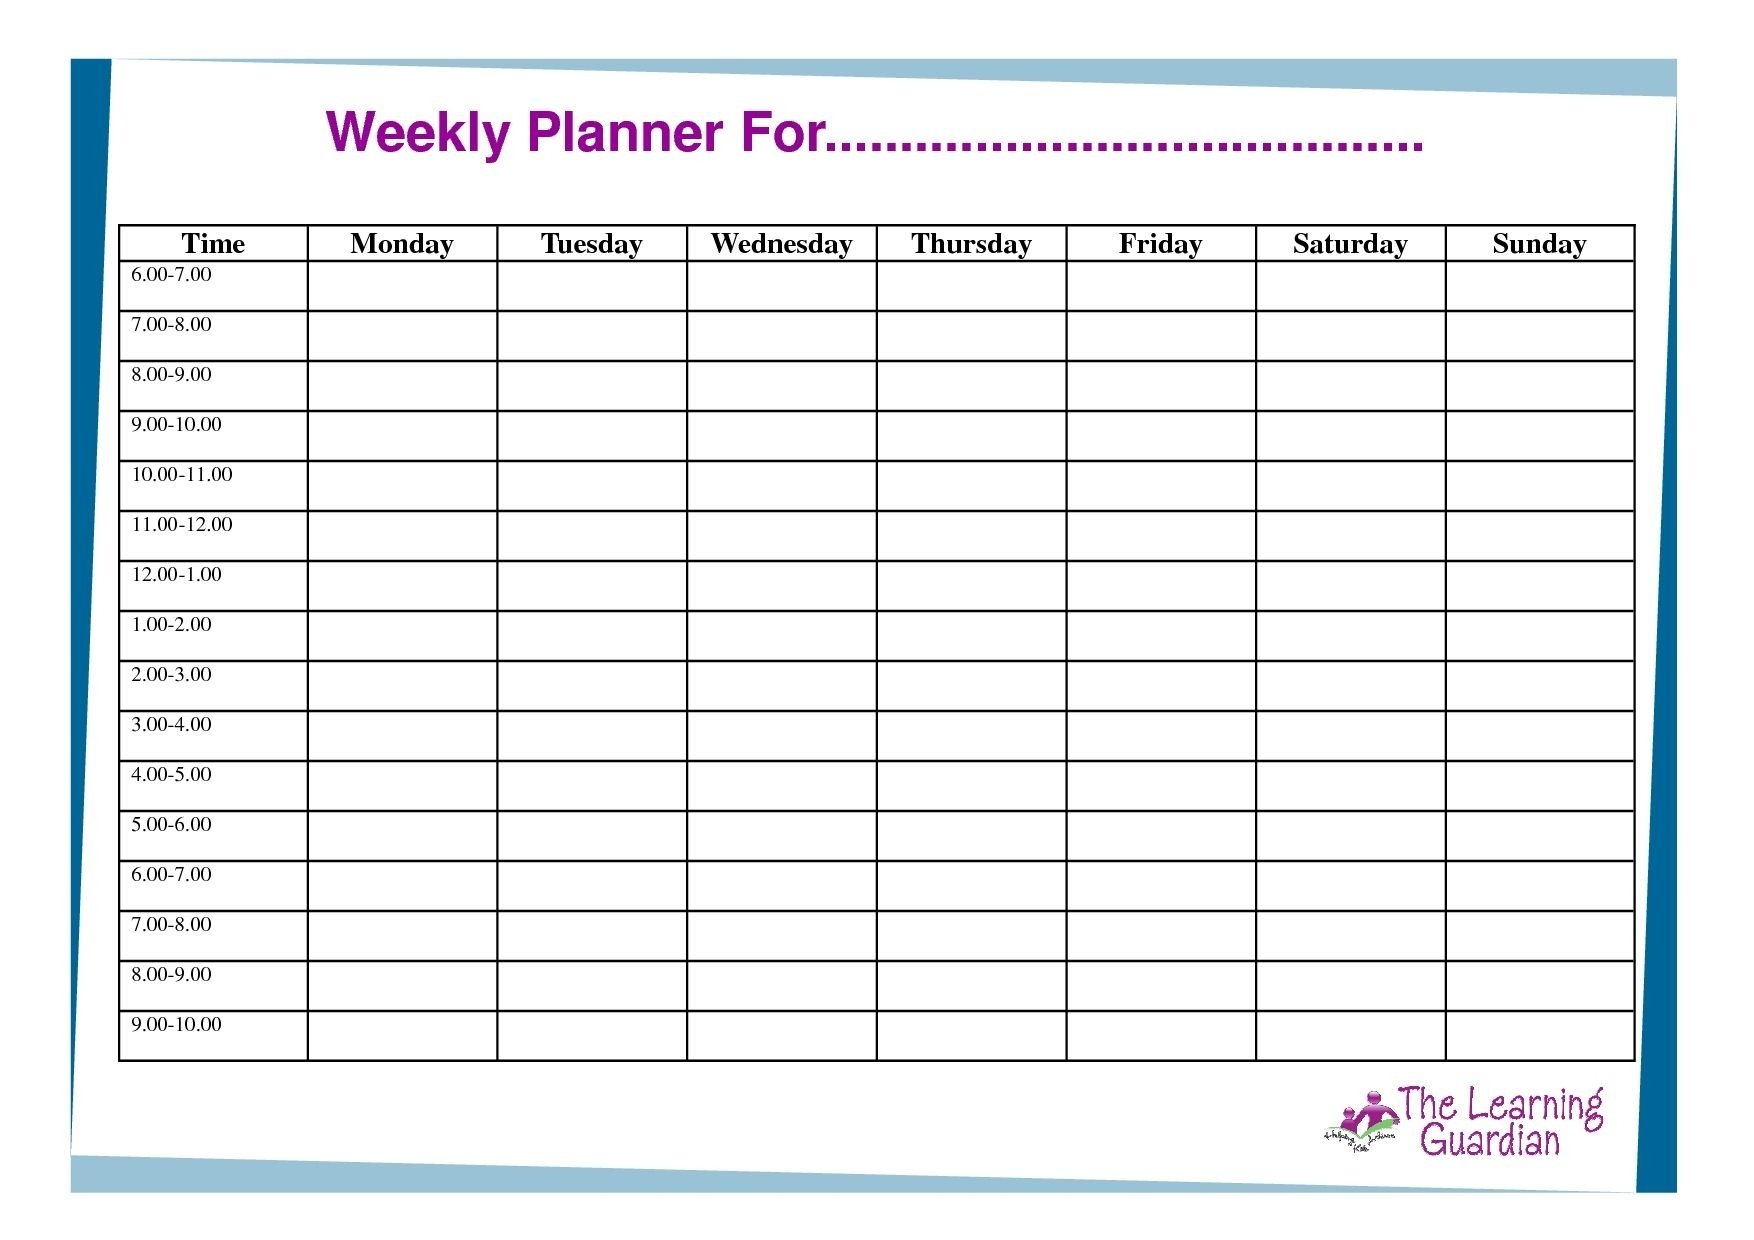 7 Day Weekly Planner Template Printable – Calendar Calendar Template For 7 Days